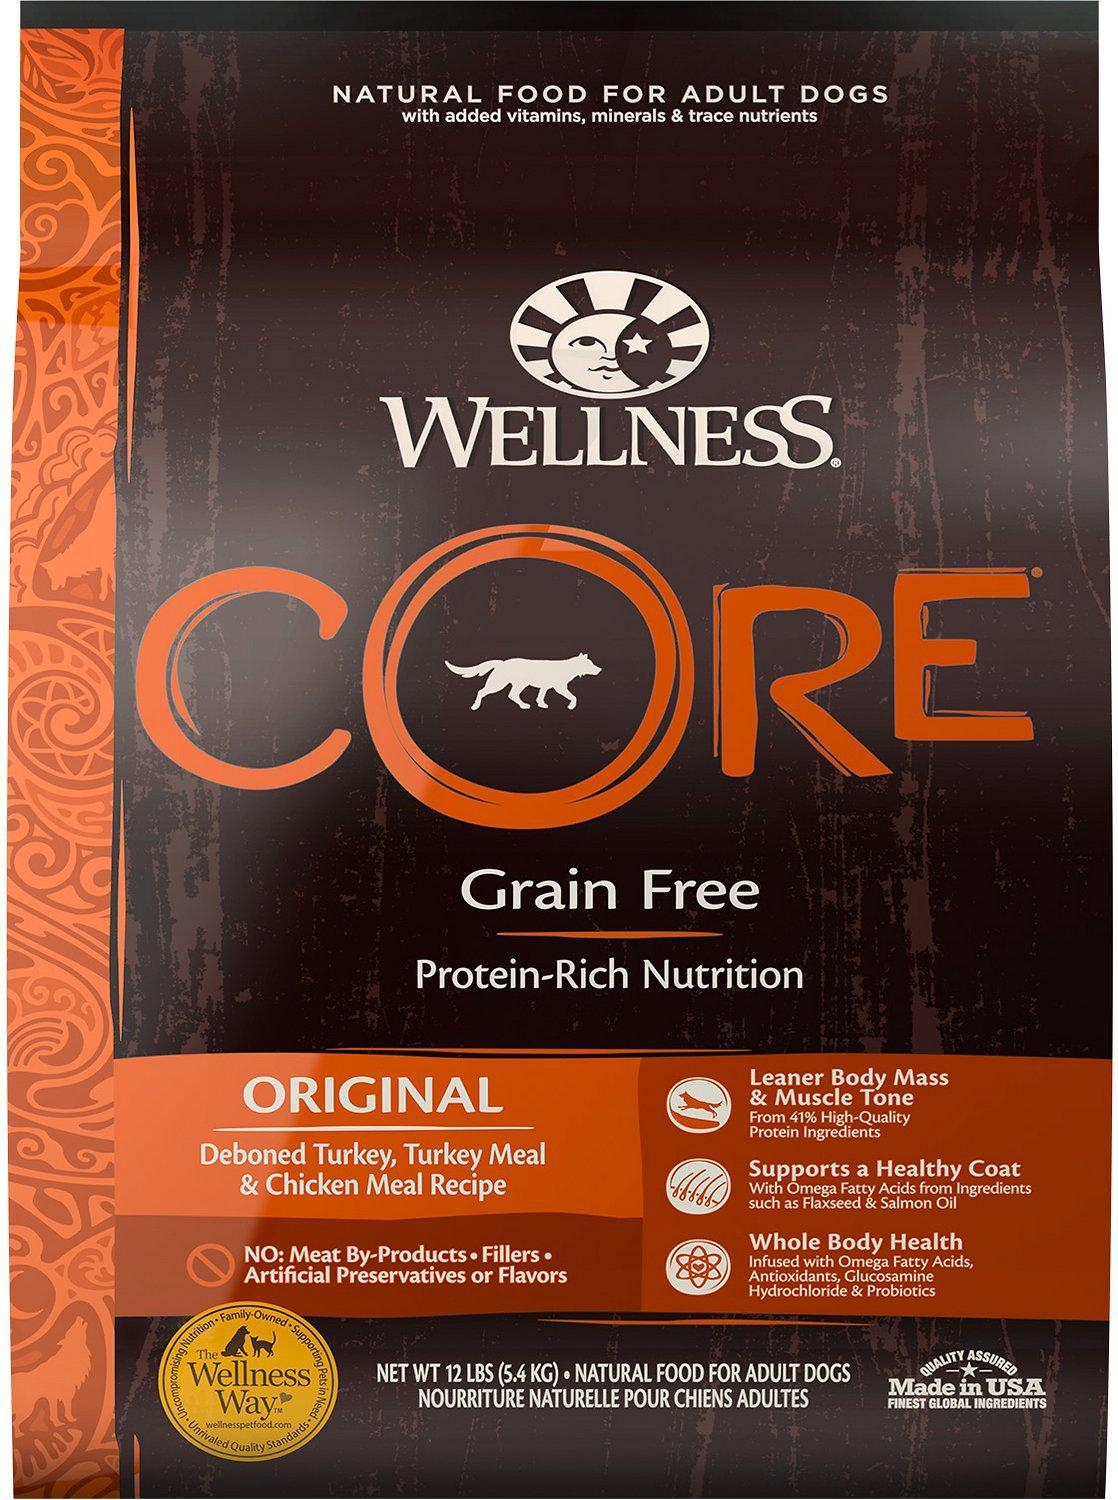 Wellness Core Original Grain Free Dry Dog Food-Le Pup Pet Supplies and Grooming